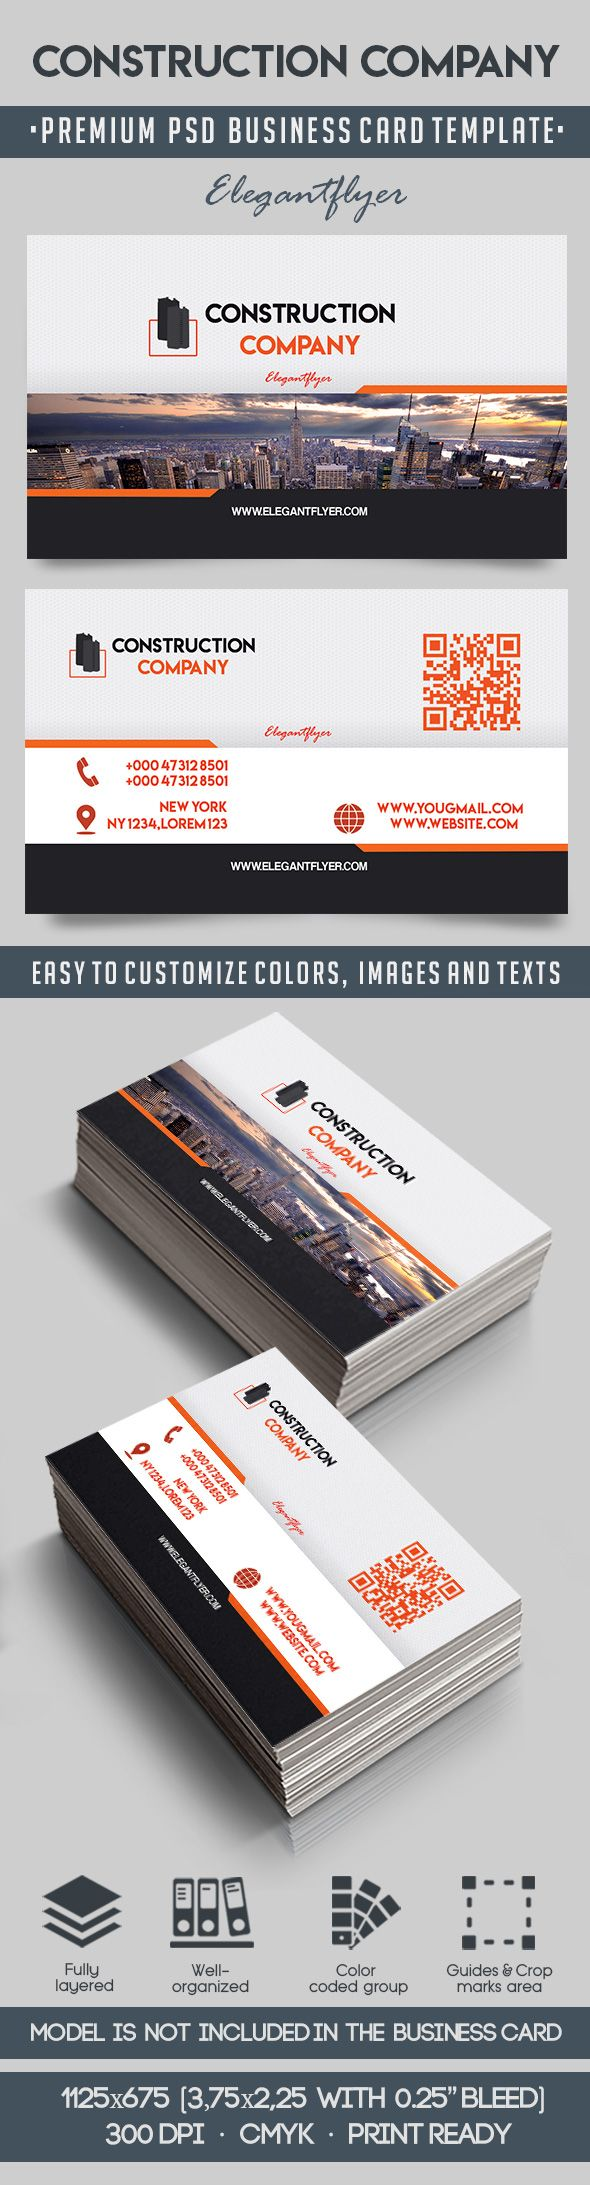 Construction Company – Premium Business Card Templates PSD – by ...